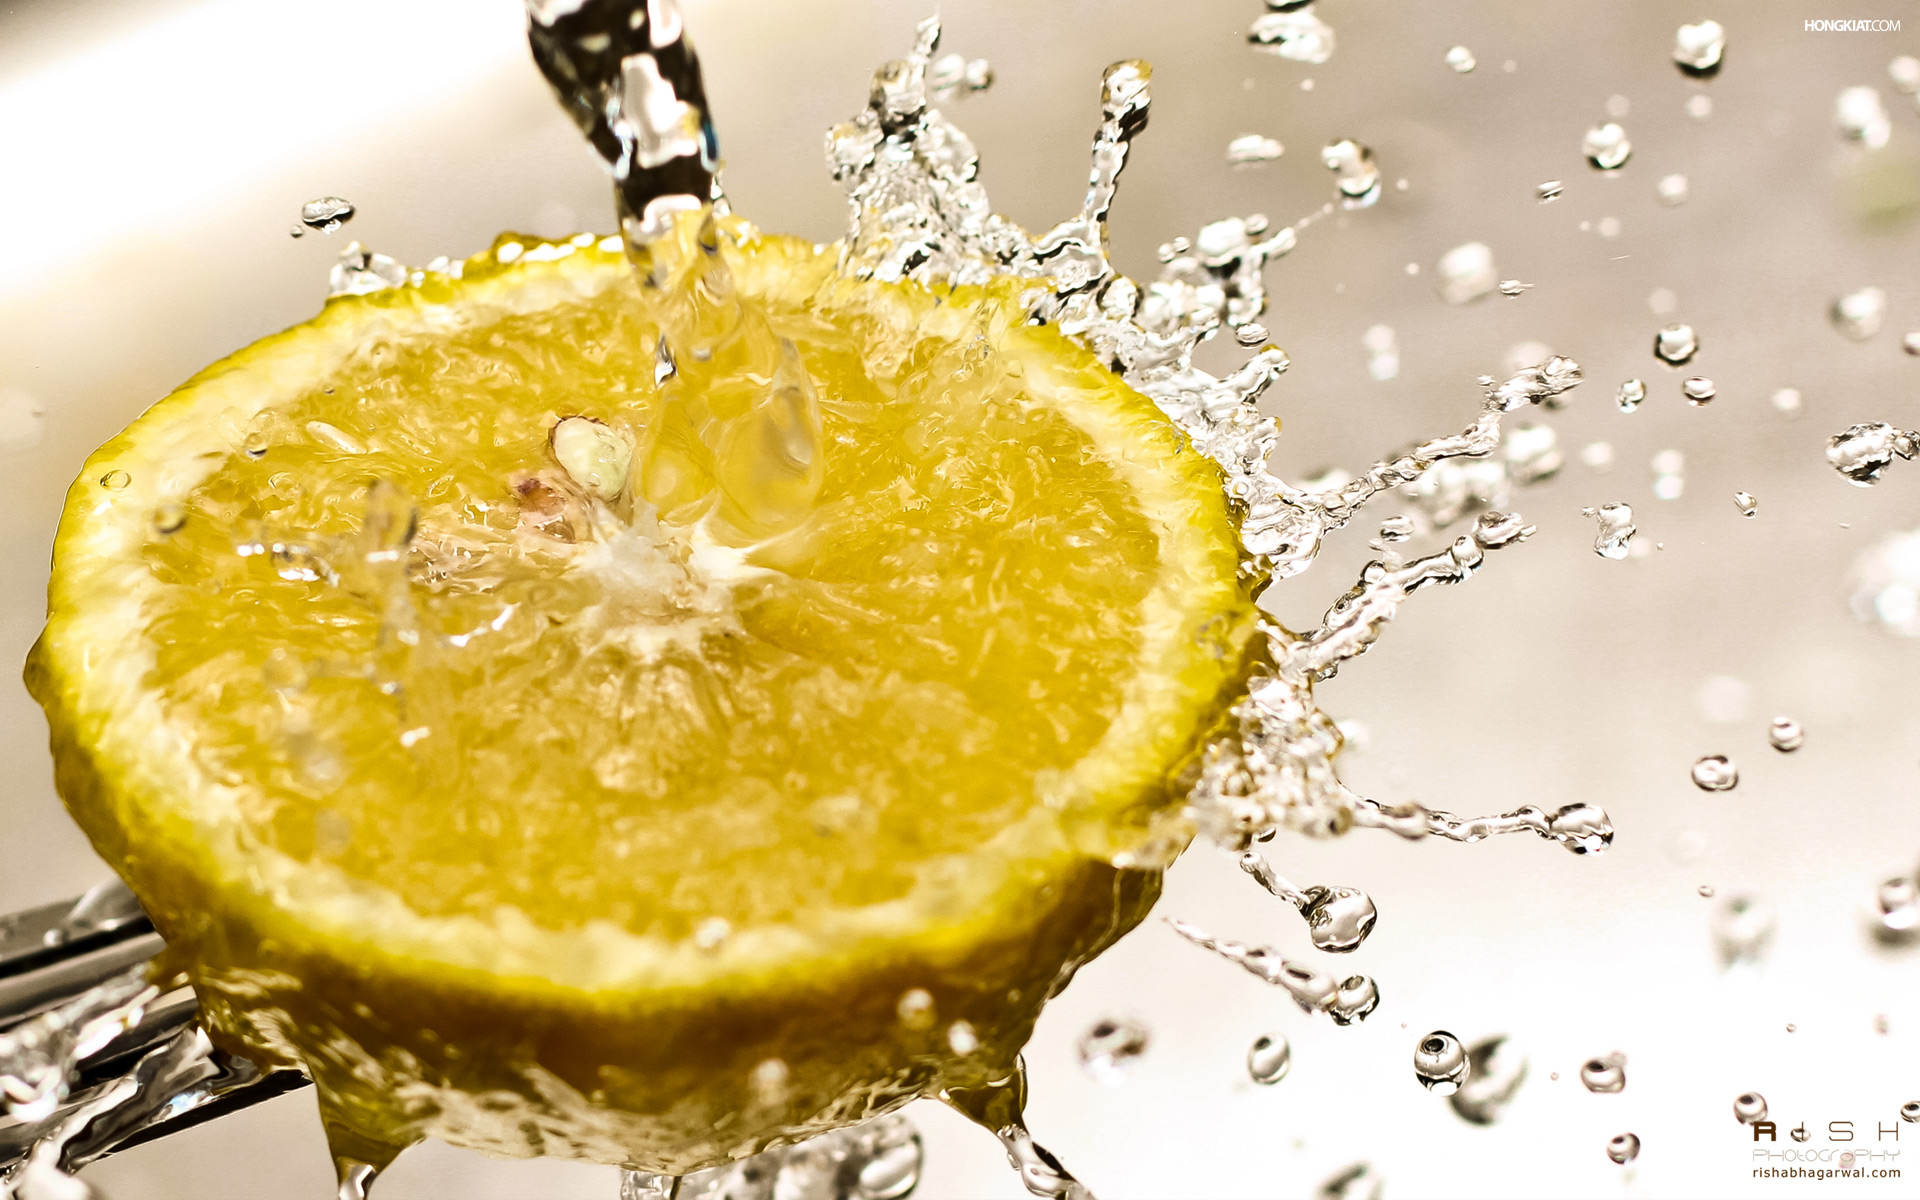 Lemon Splash 356.6 Kb